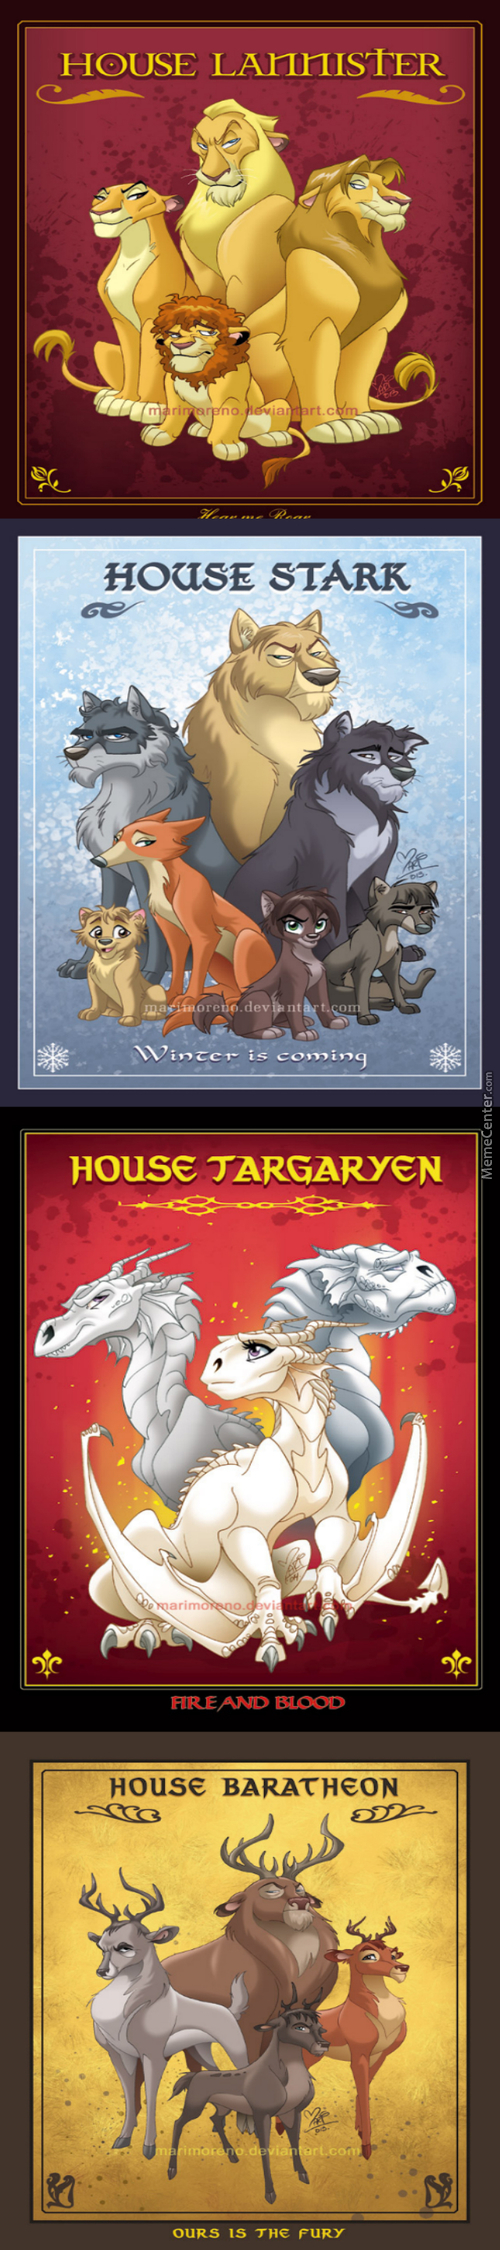 Disney's Game Of Thrones, Couldn't Find The Source.